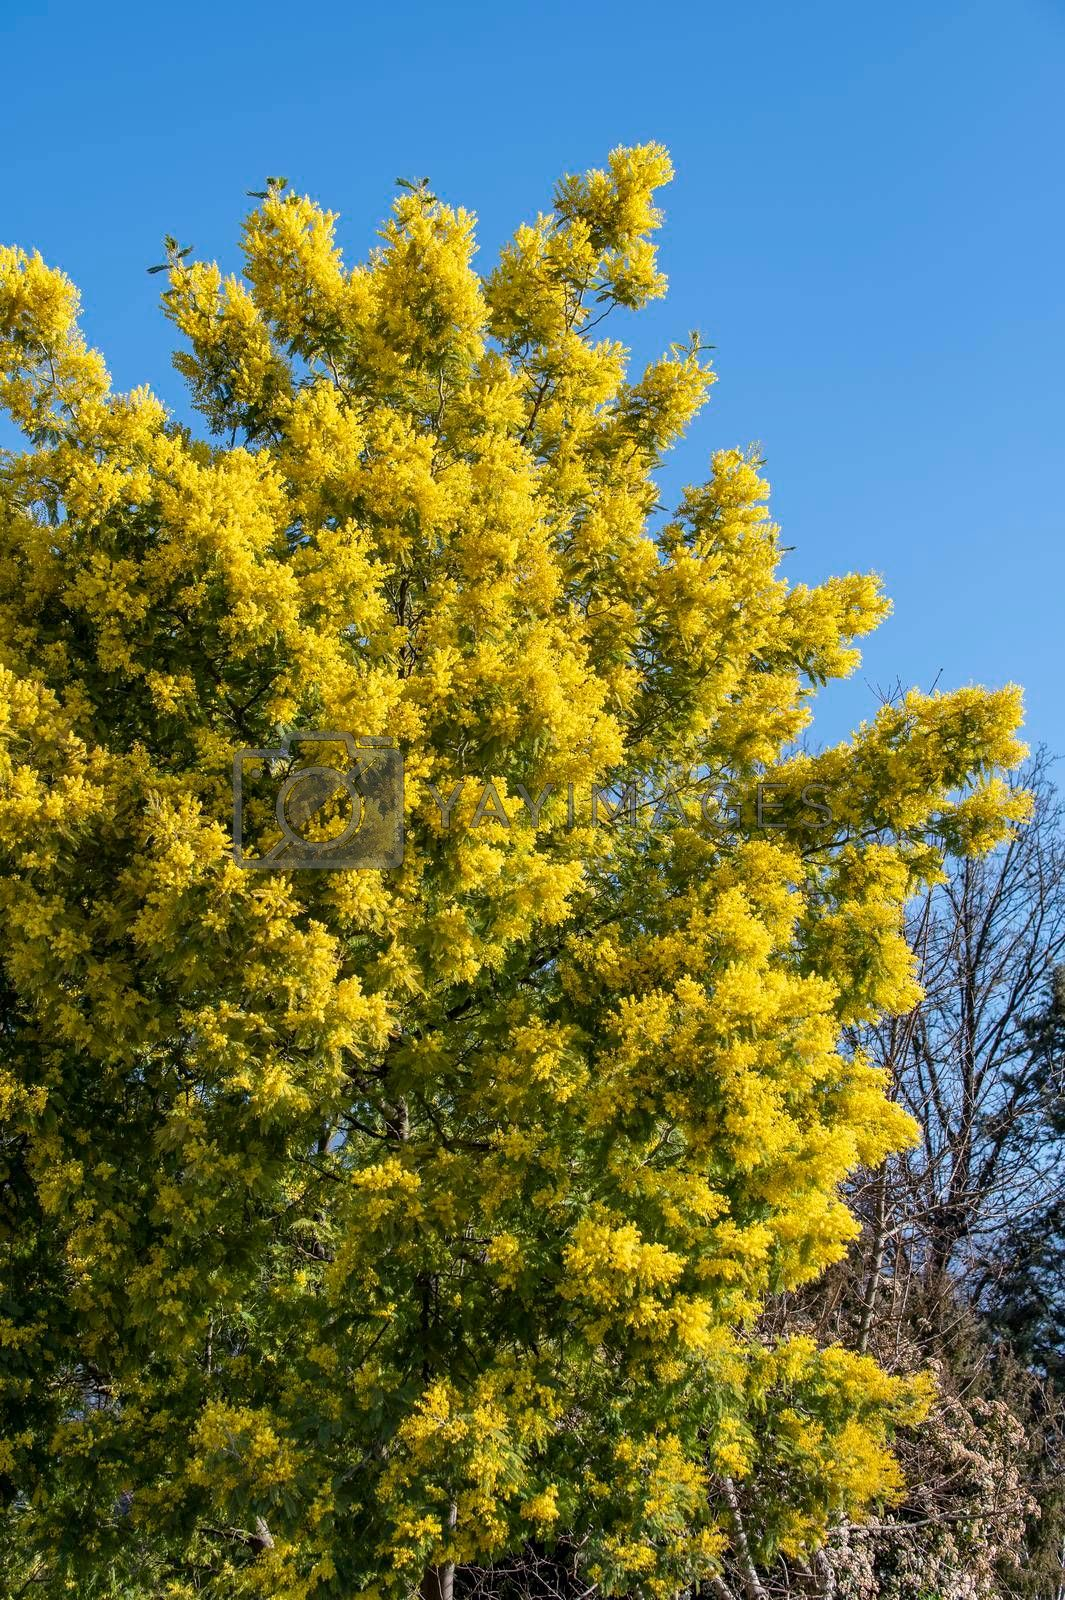 mimosa plant with an intense yellow color, symbol of women's day 8 March